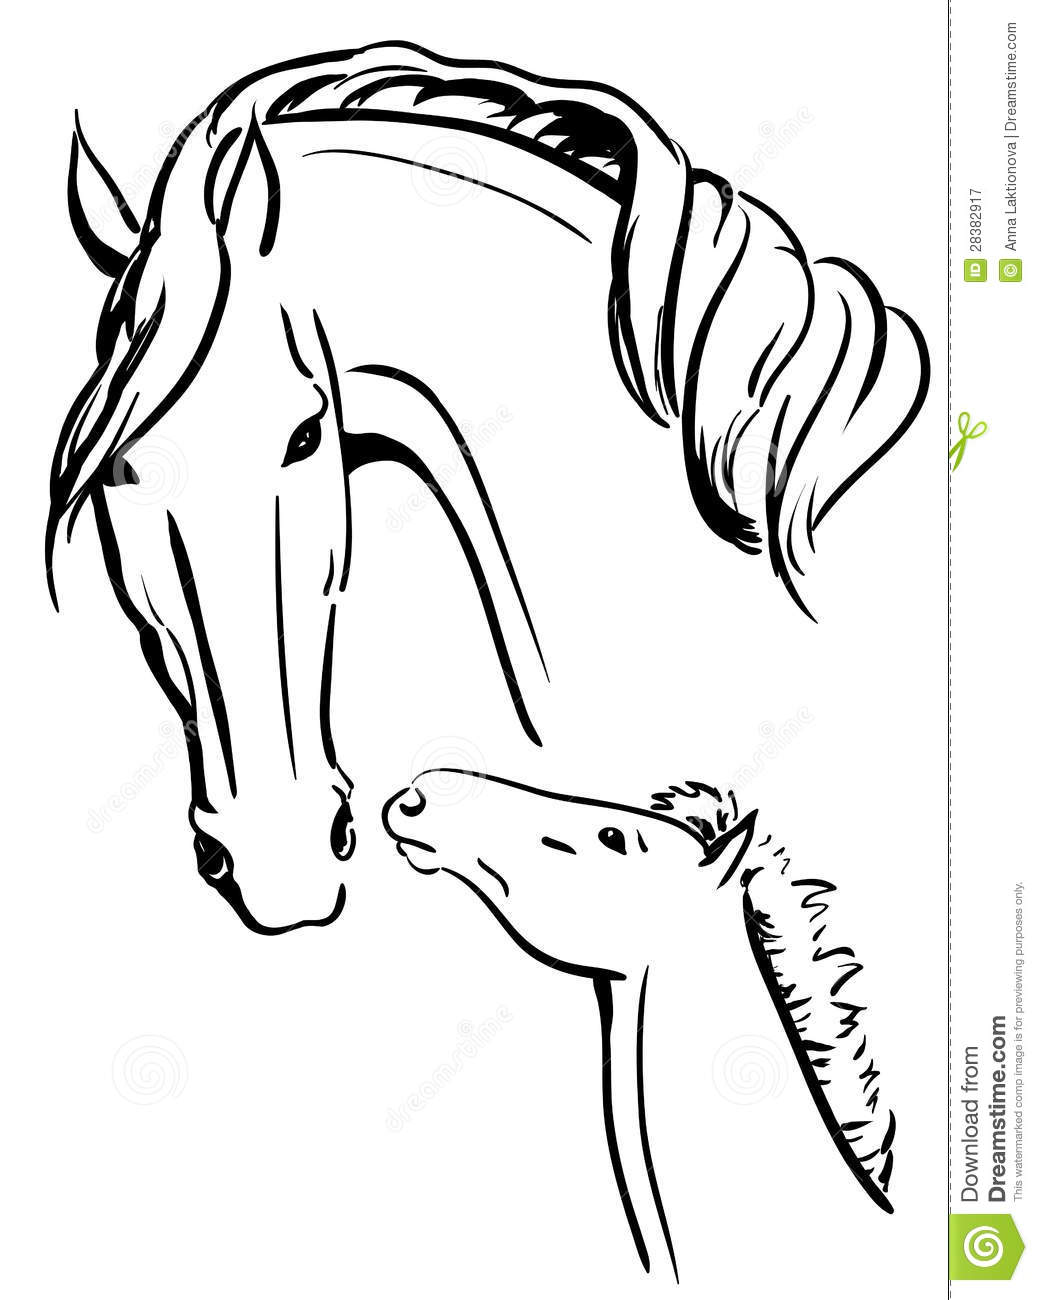 Paarden Logo Kleurplaat Mare And Foal Black And White Royalty Free Stock